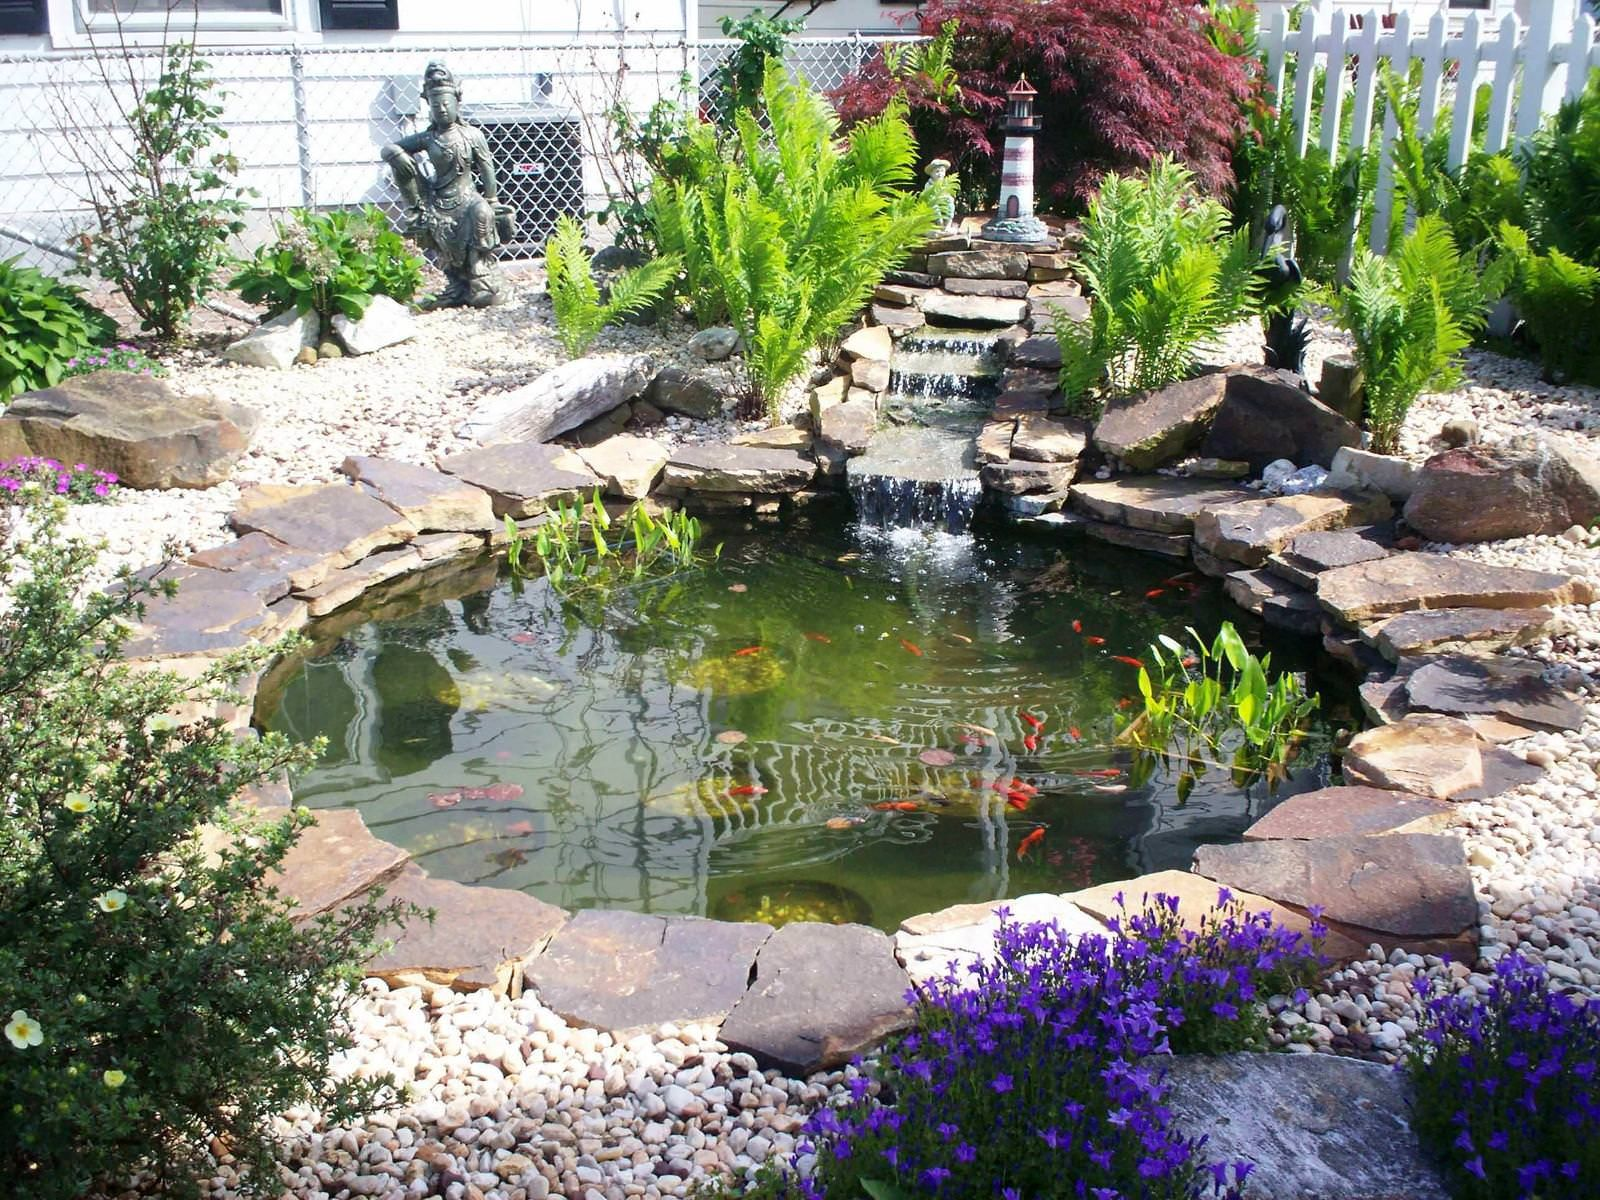 Small garden or backyard aquarium ideas practic ideas for Backyard fish pond